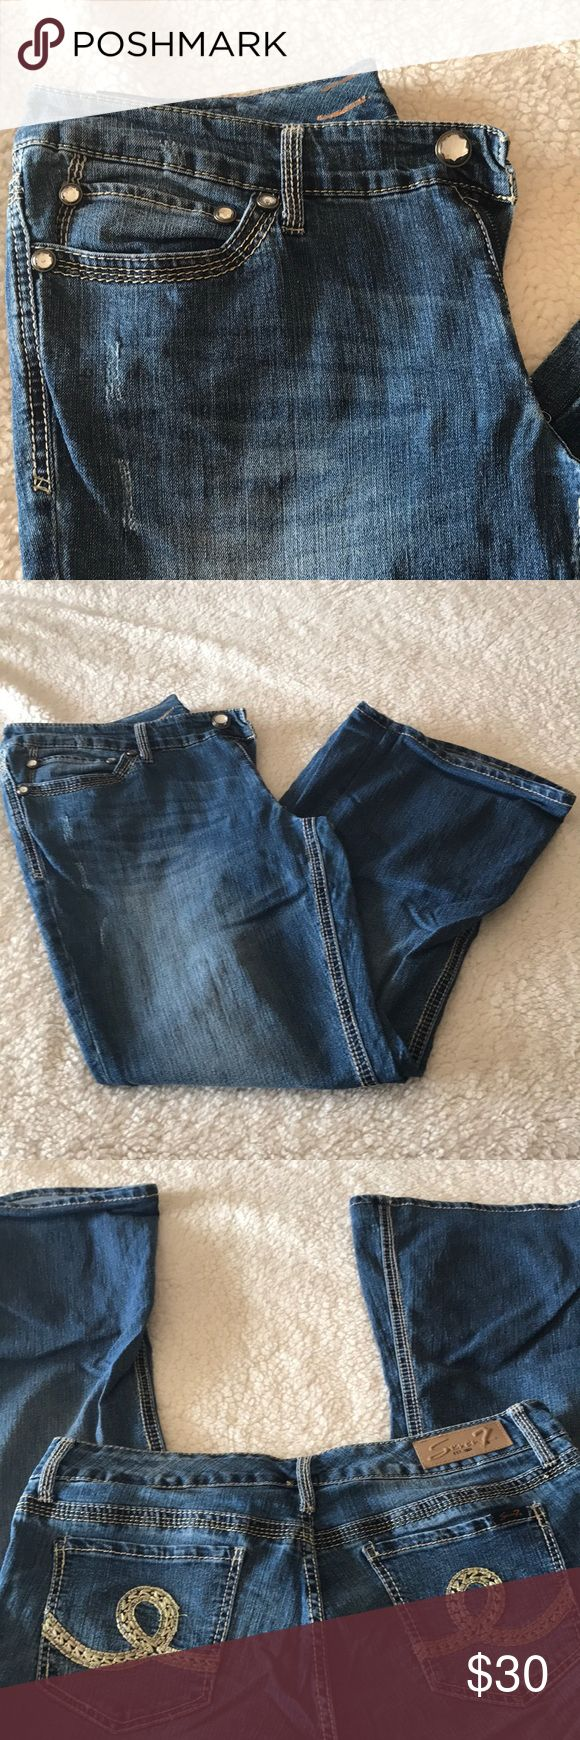 Seven7 plus size denim jeans sz 14 destructed wash Seven plus size denim jeans sz 14 destructed wash with large stitch details. Recent 50pd weight loss is causing me to clean out my closet, lots of items listing daily. Bundle multiple listings to save on shipping. Seven7 Jeans Flare & Wide Leg